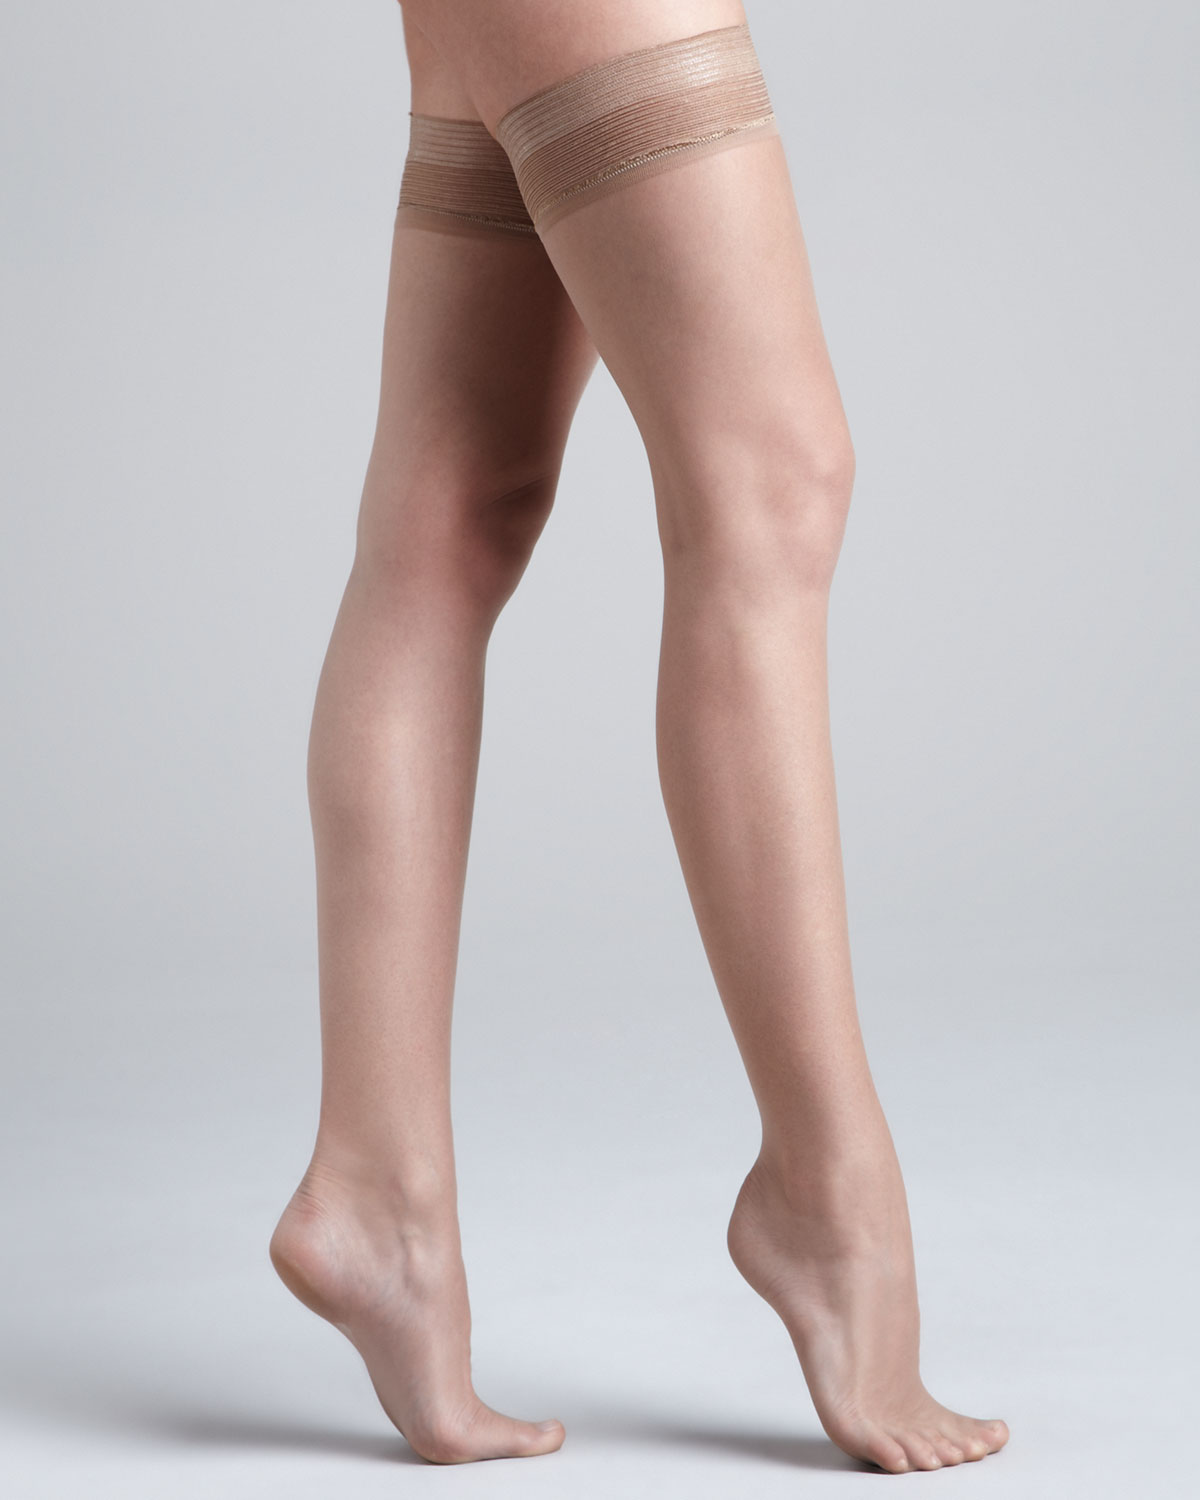 d6572234a Donna Karan Nudes Thigh High Stayup Stockings in Natural - Lyst